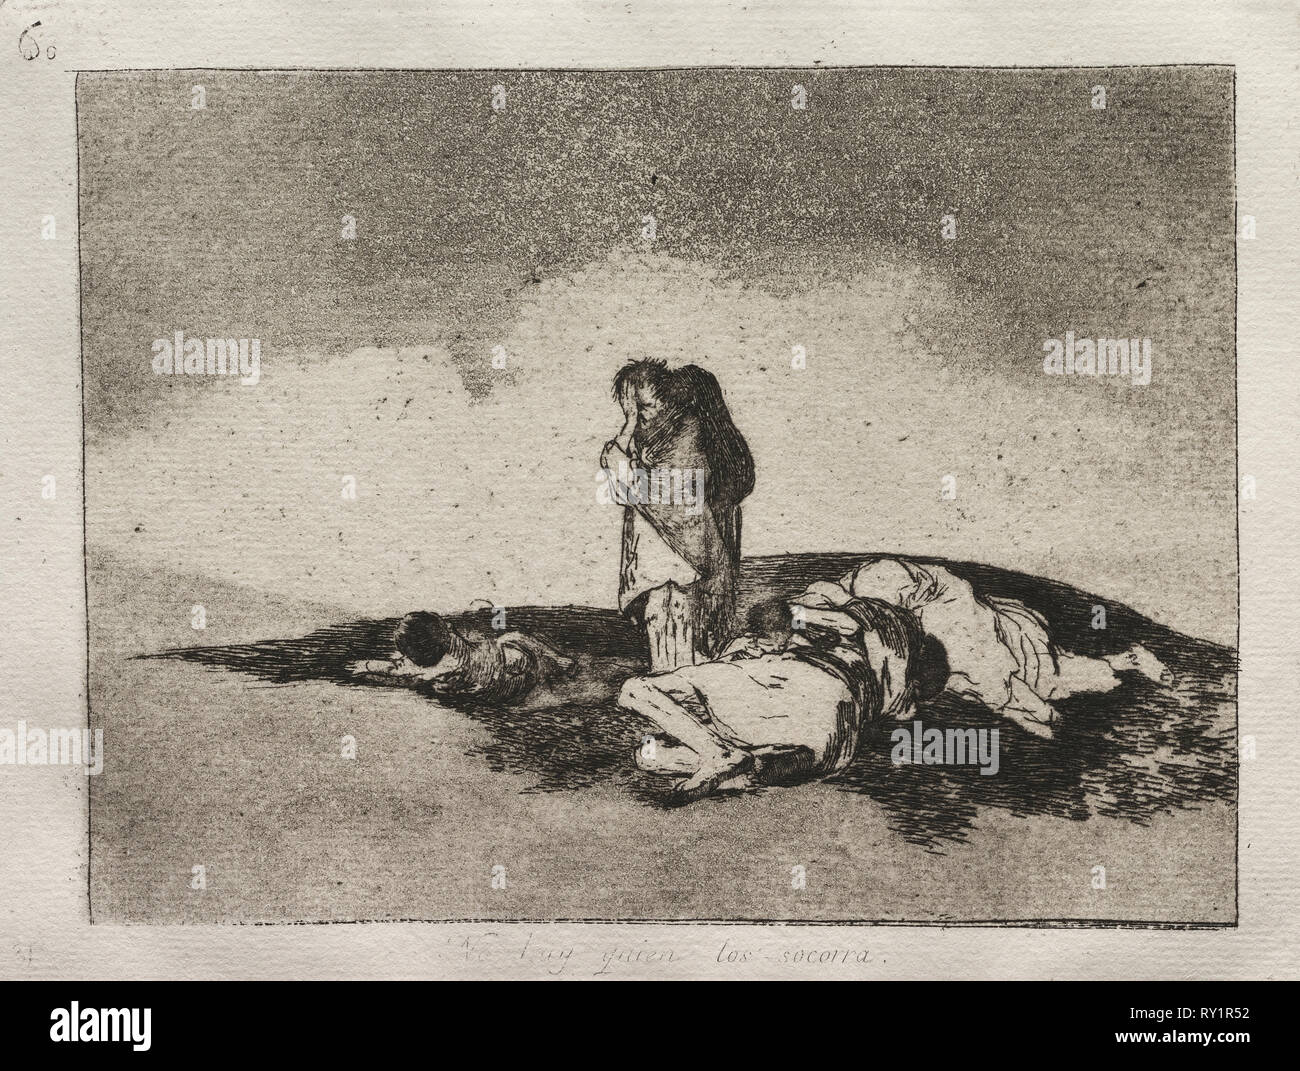 The Horrors of War:  There is No One to Help Them. Francisco de Goya (Spanish, 1746-1828). Etching and aquatint - Stock Image